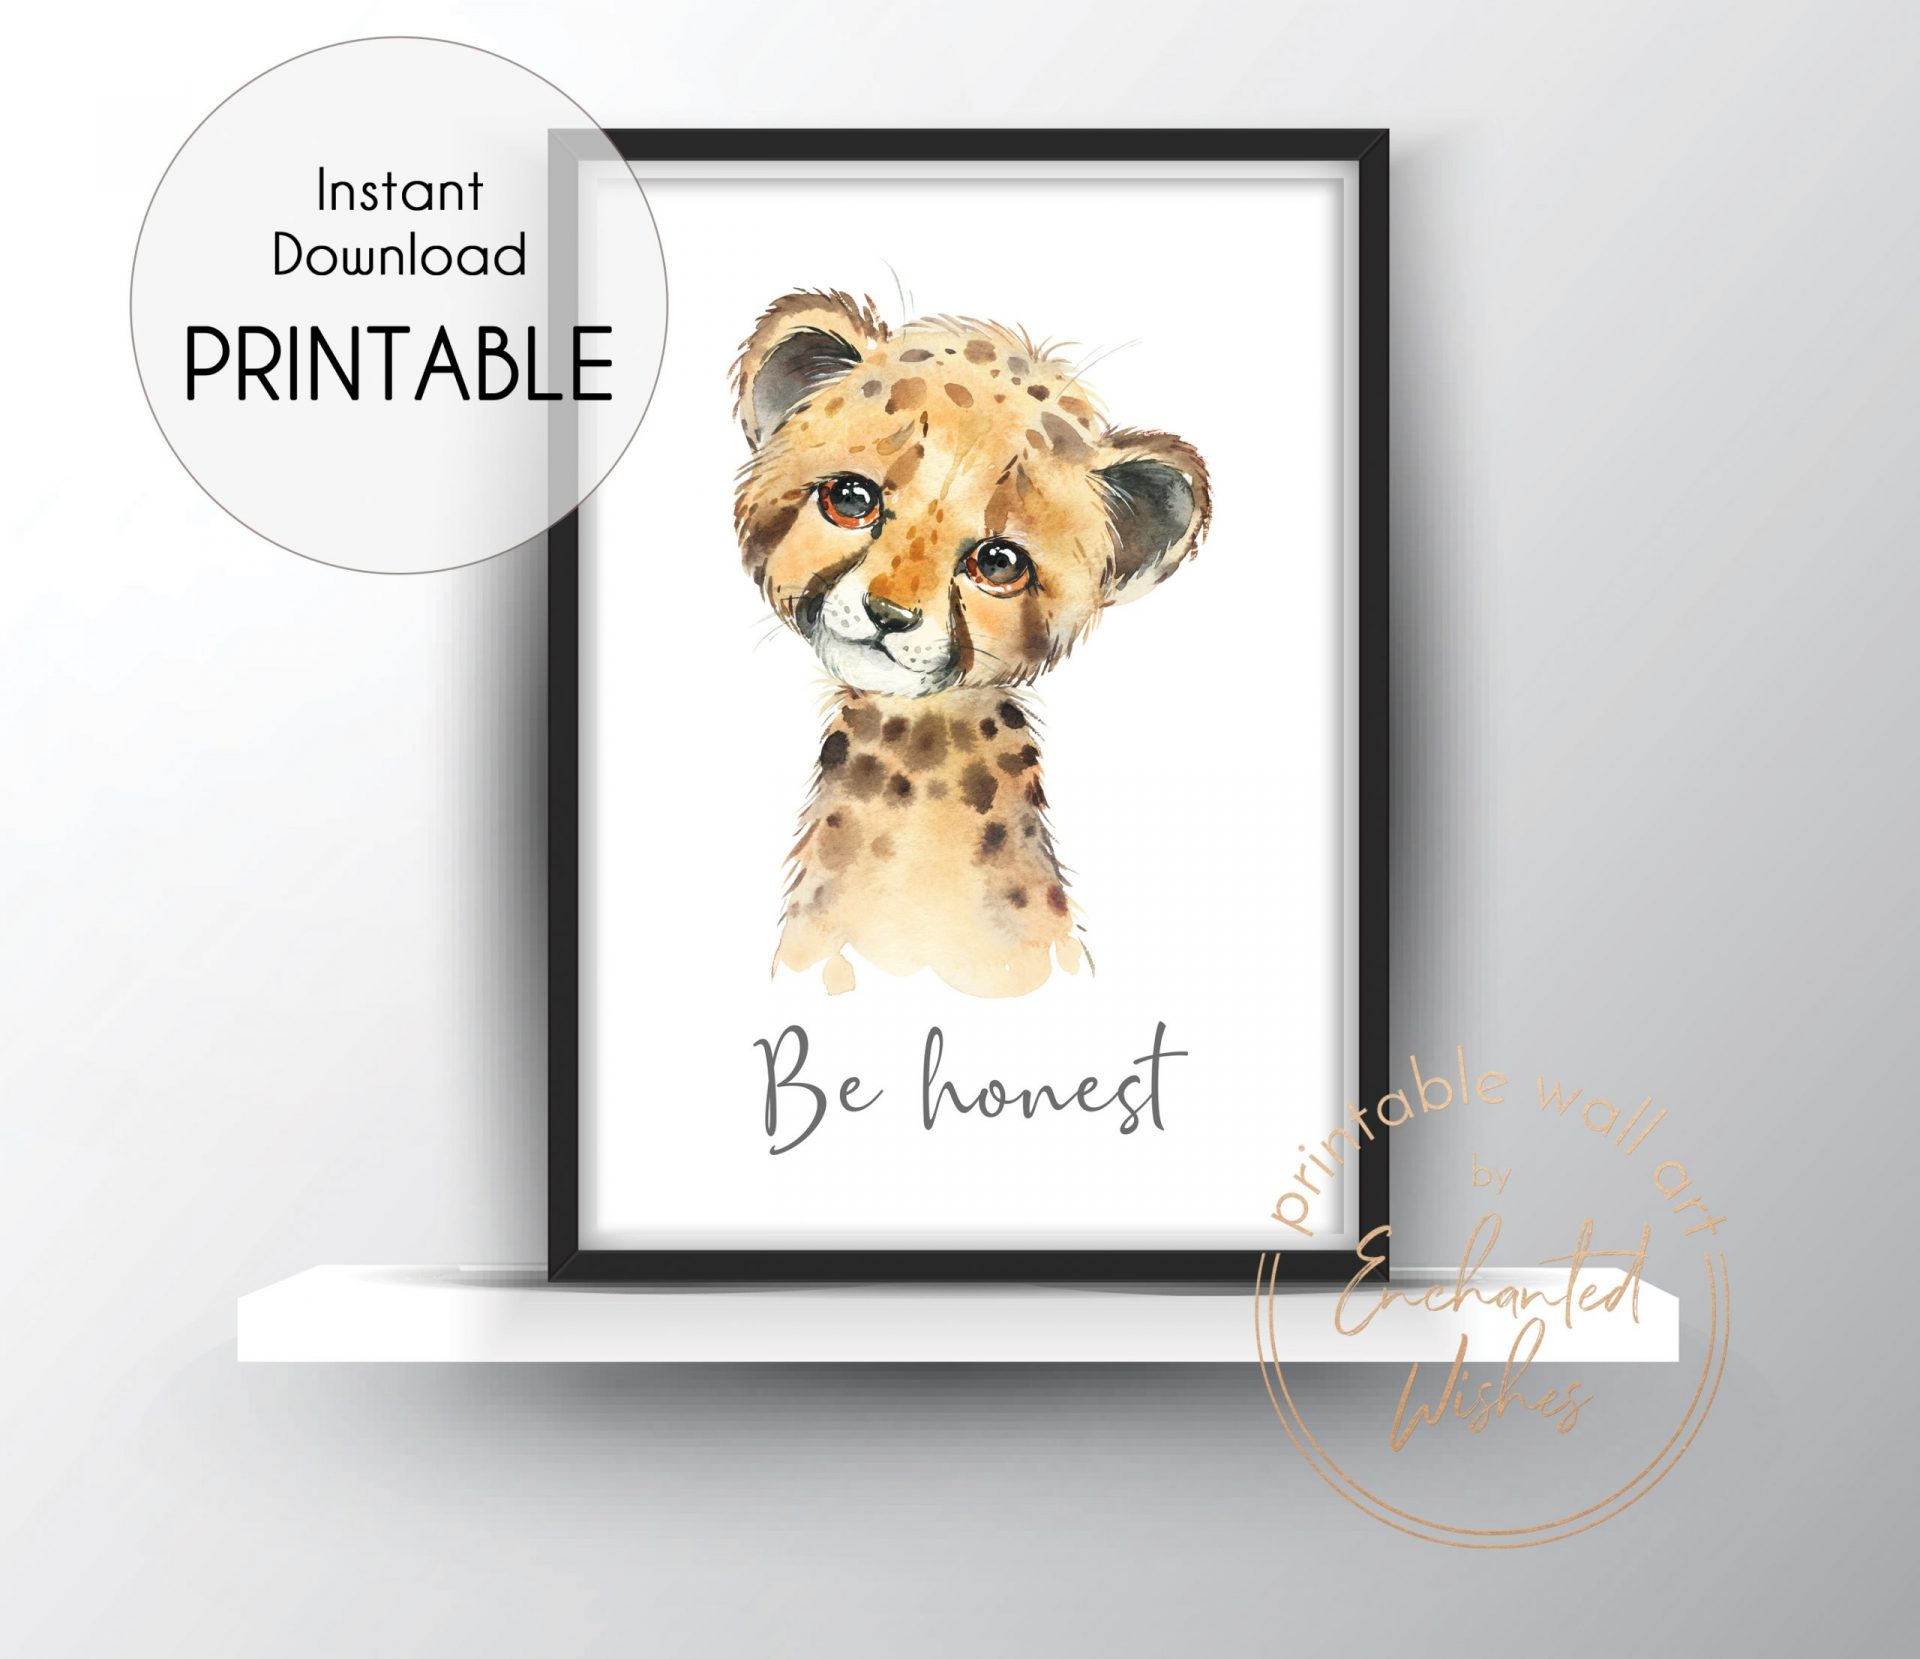 Cheetah be honest print